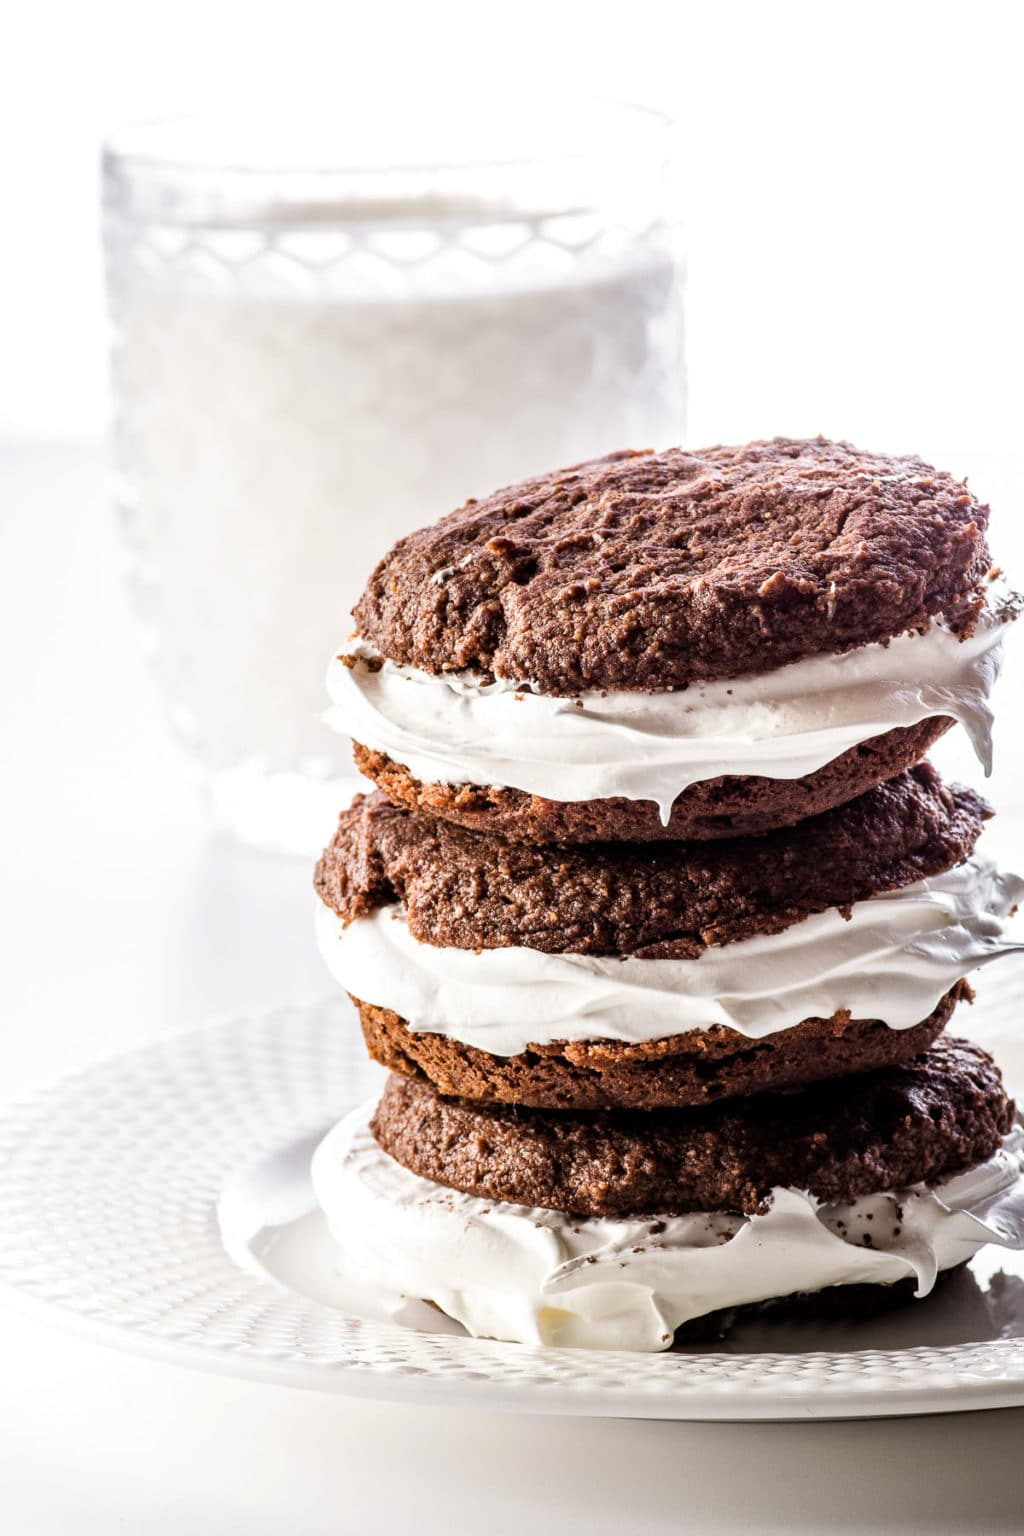 Stacked whoopie pies on a white plate in front of a glass of cashew milk